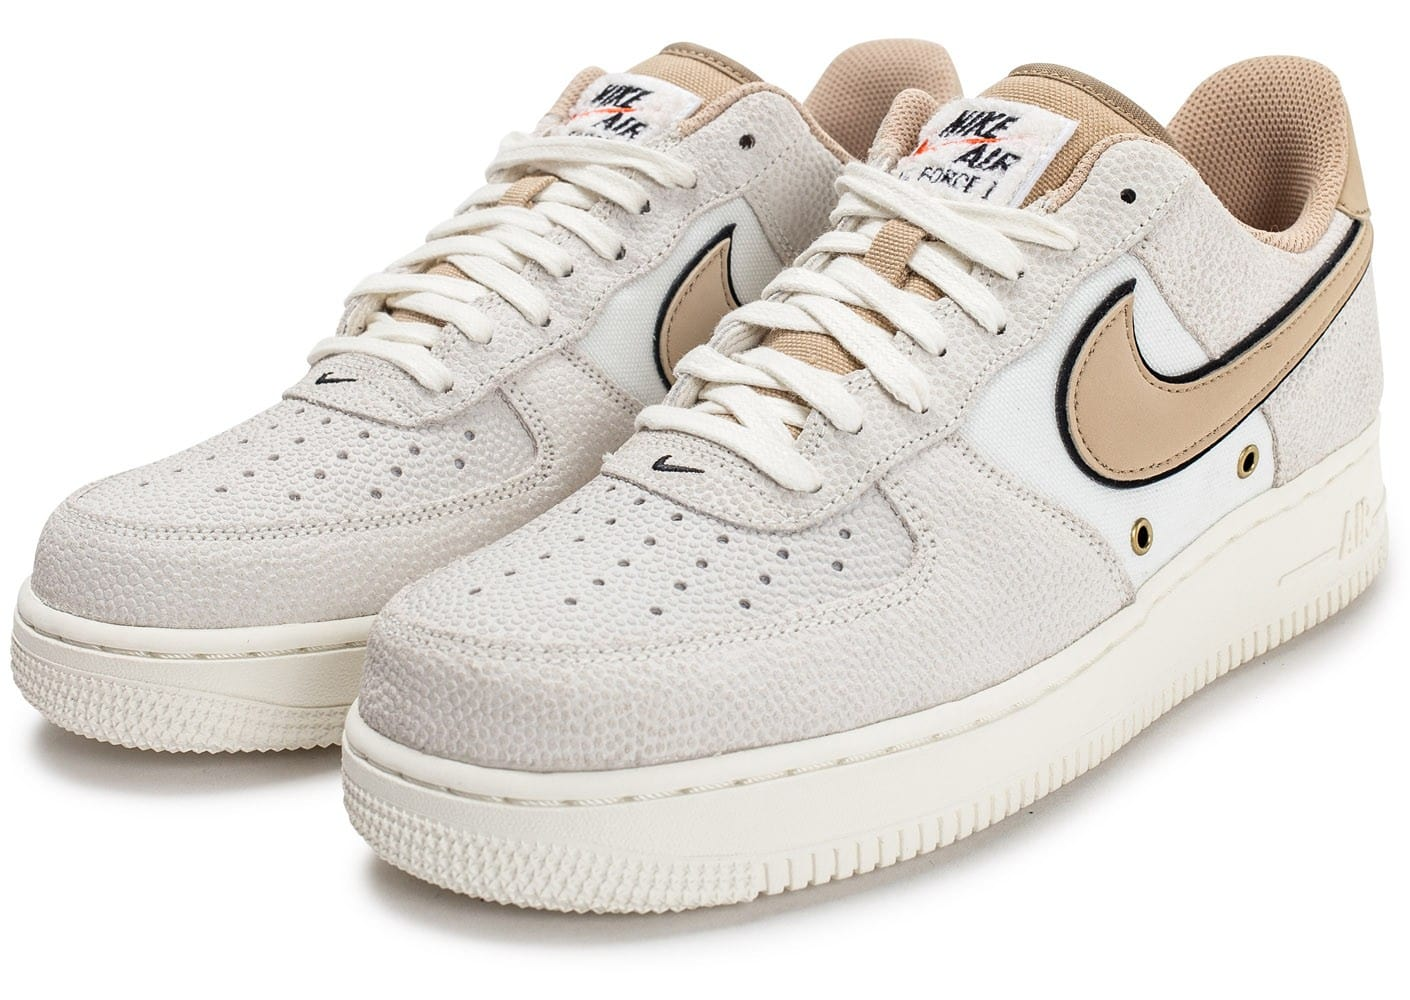 Homme Air '07 Baskets Lv08 Chaussures Nike 1 Force Beige Chausport cTF1KJl3